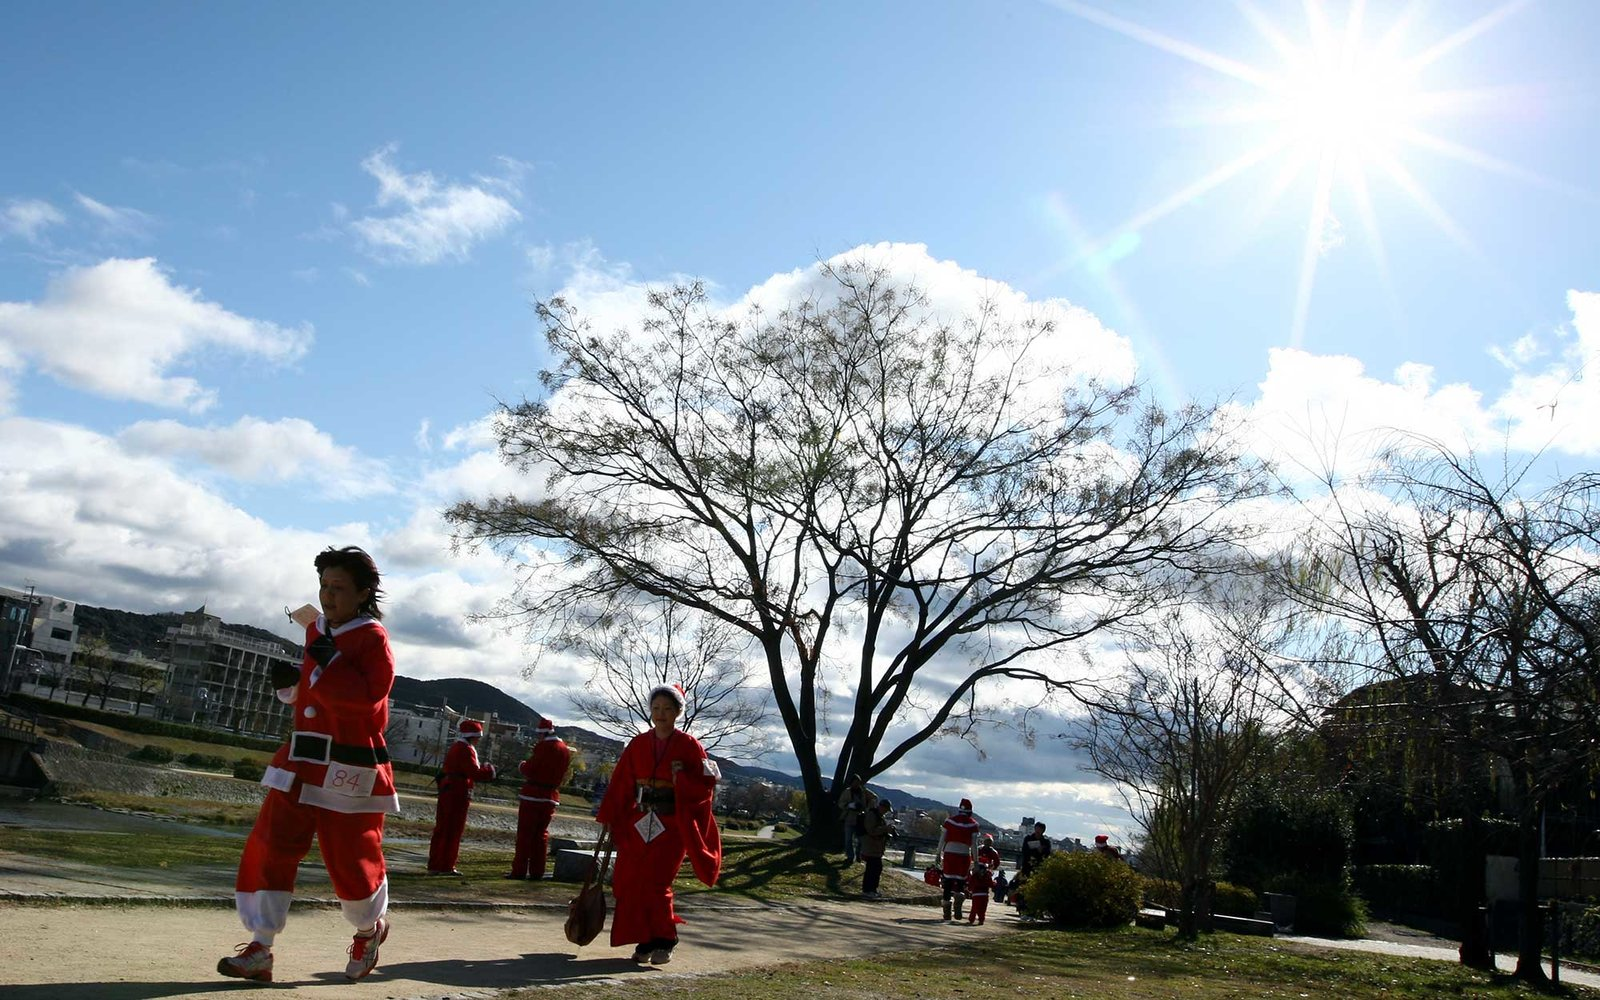 KYOTO, JAPAN - DECEMBER 23:  Participants in Santa costumes race in the Kyoto Santa Claus Marathon on December 23, 2011 in Kyoto, Japan.  (Photo by Buddhika Weerasinghe/Getty Images)